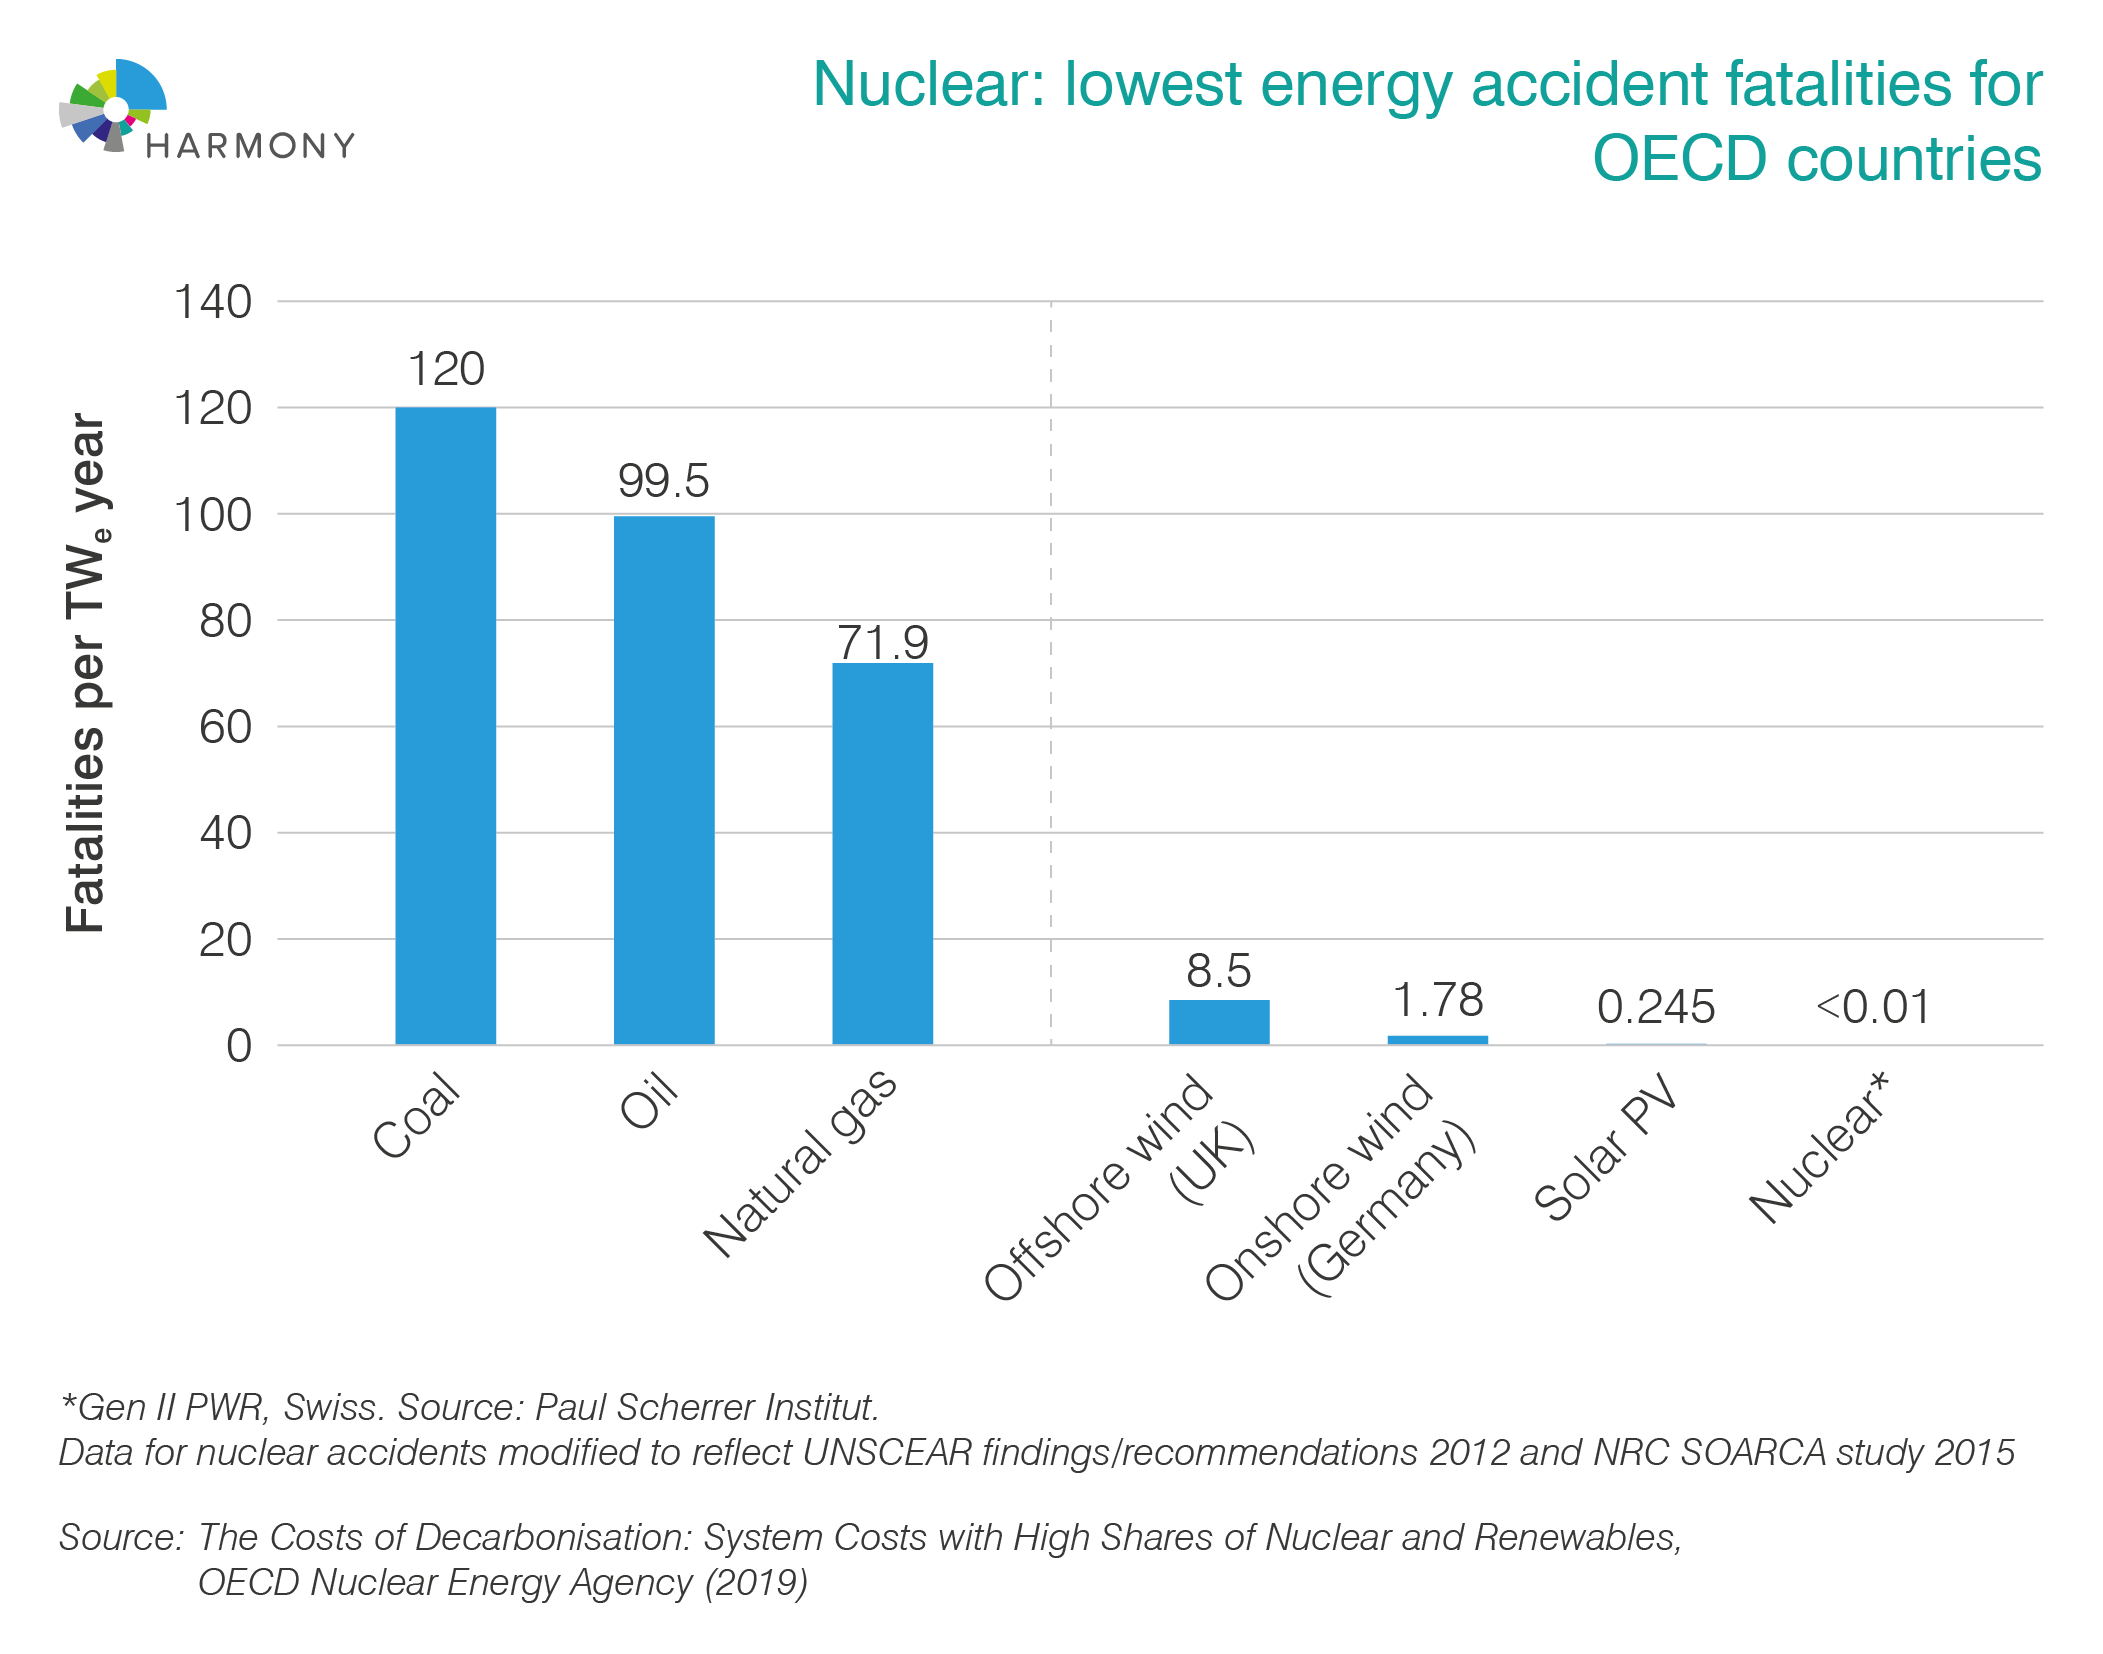 Energy accident fatalities for OECD countries